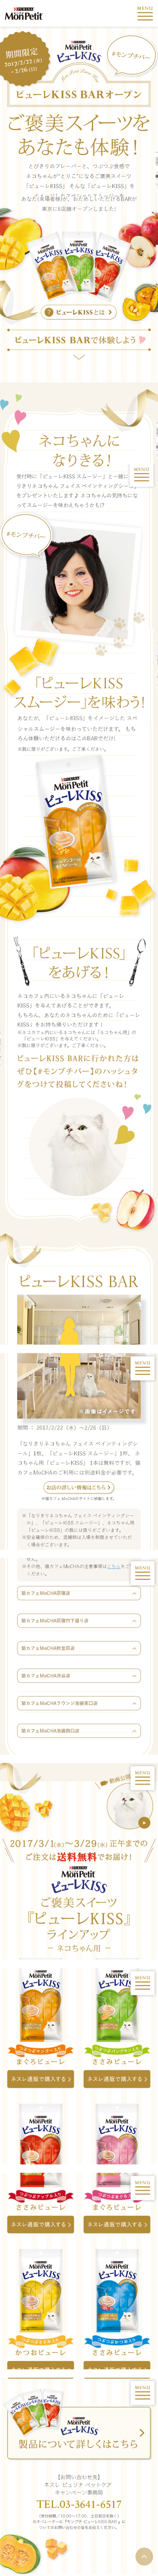 https://nestle.jp/brand/monpetit/product/puree_kiss_bar.html